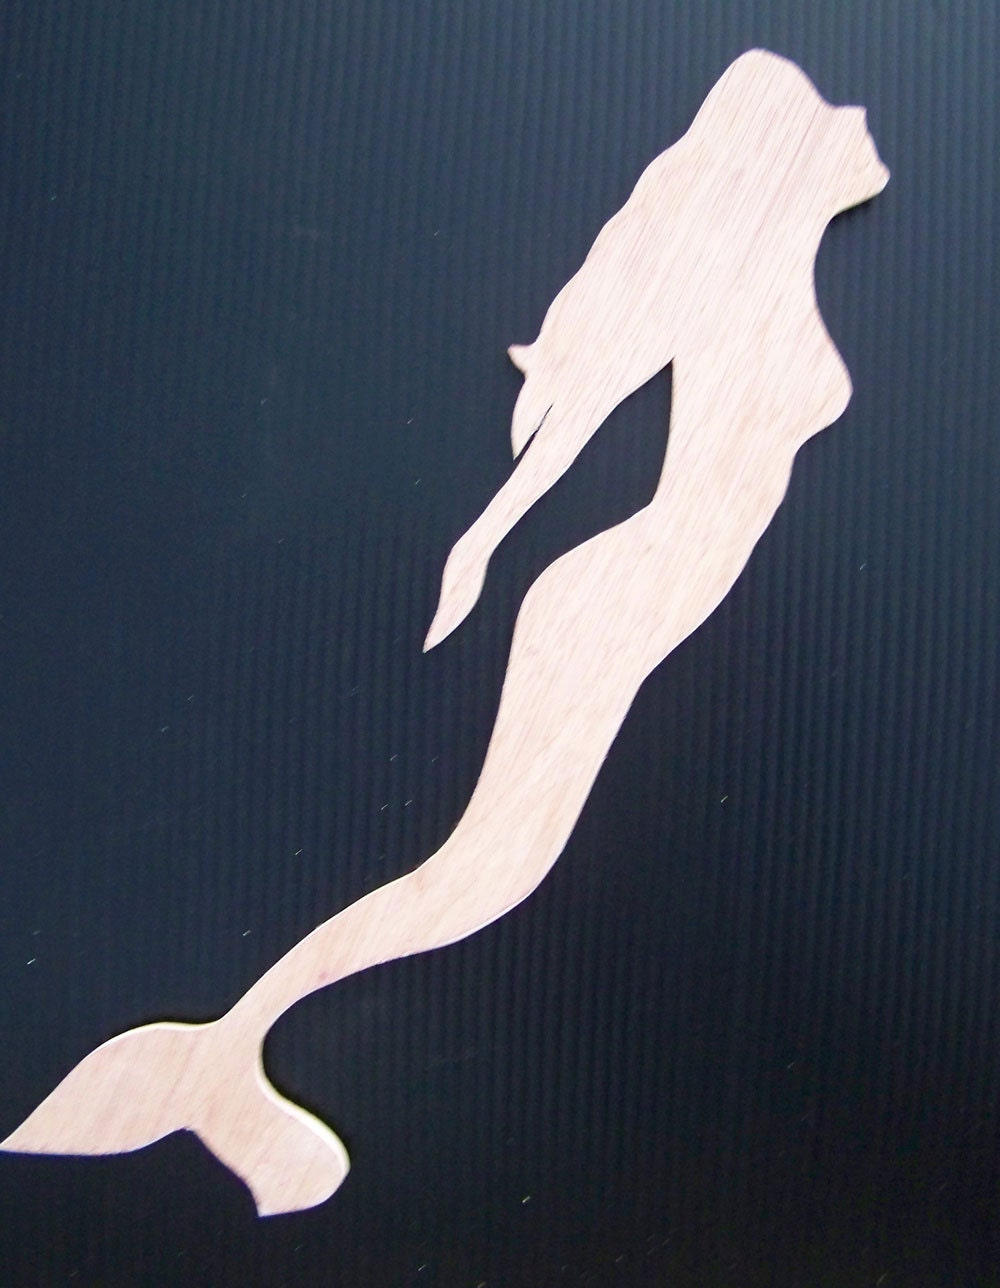 Mermaid Woodie Cut-out 17x4 by HeatherMBC on Etsy